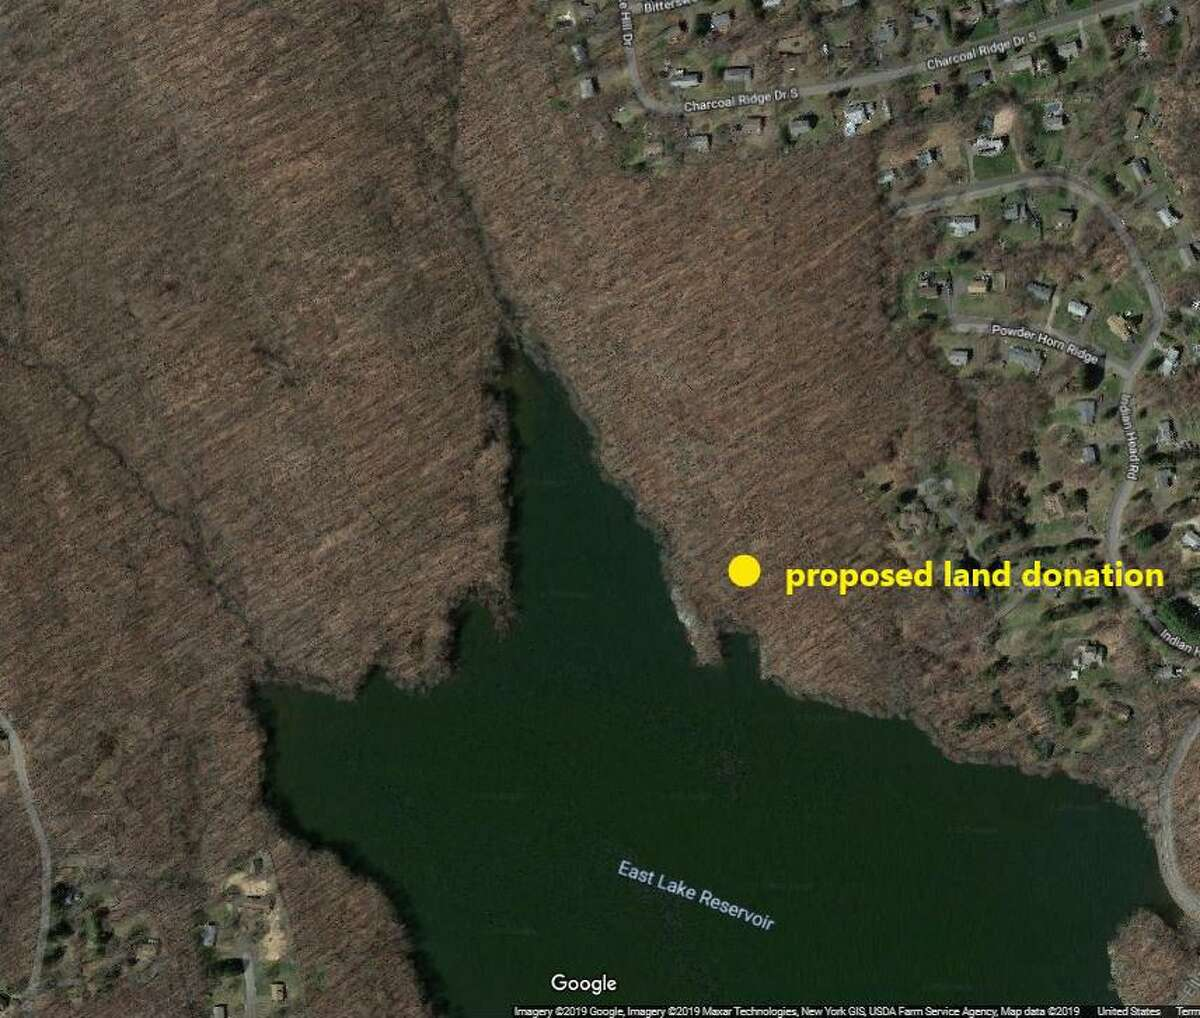 A Danbury couple has proposed donated 6 acres of lakefront property to the city.